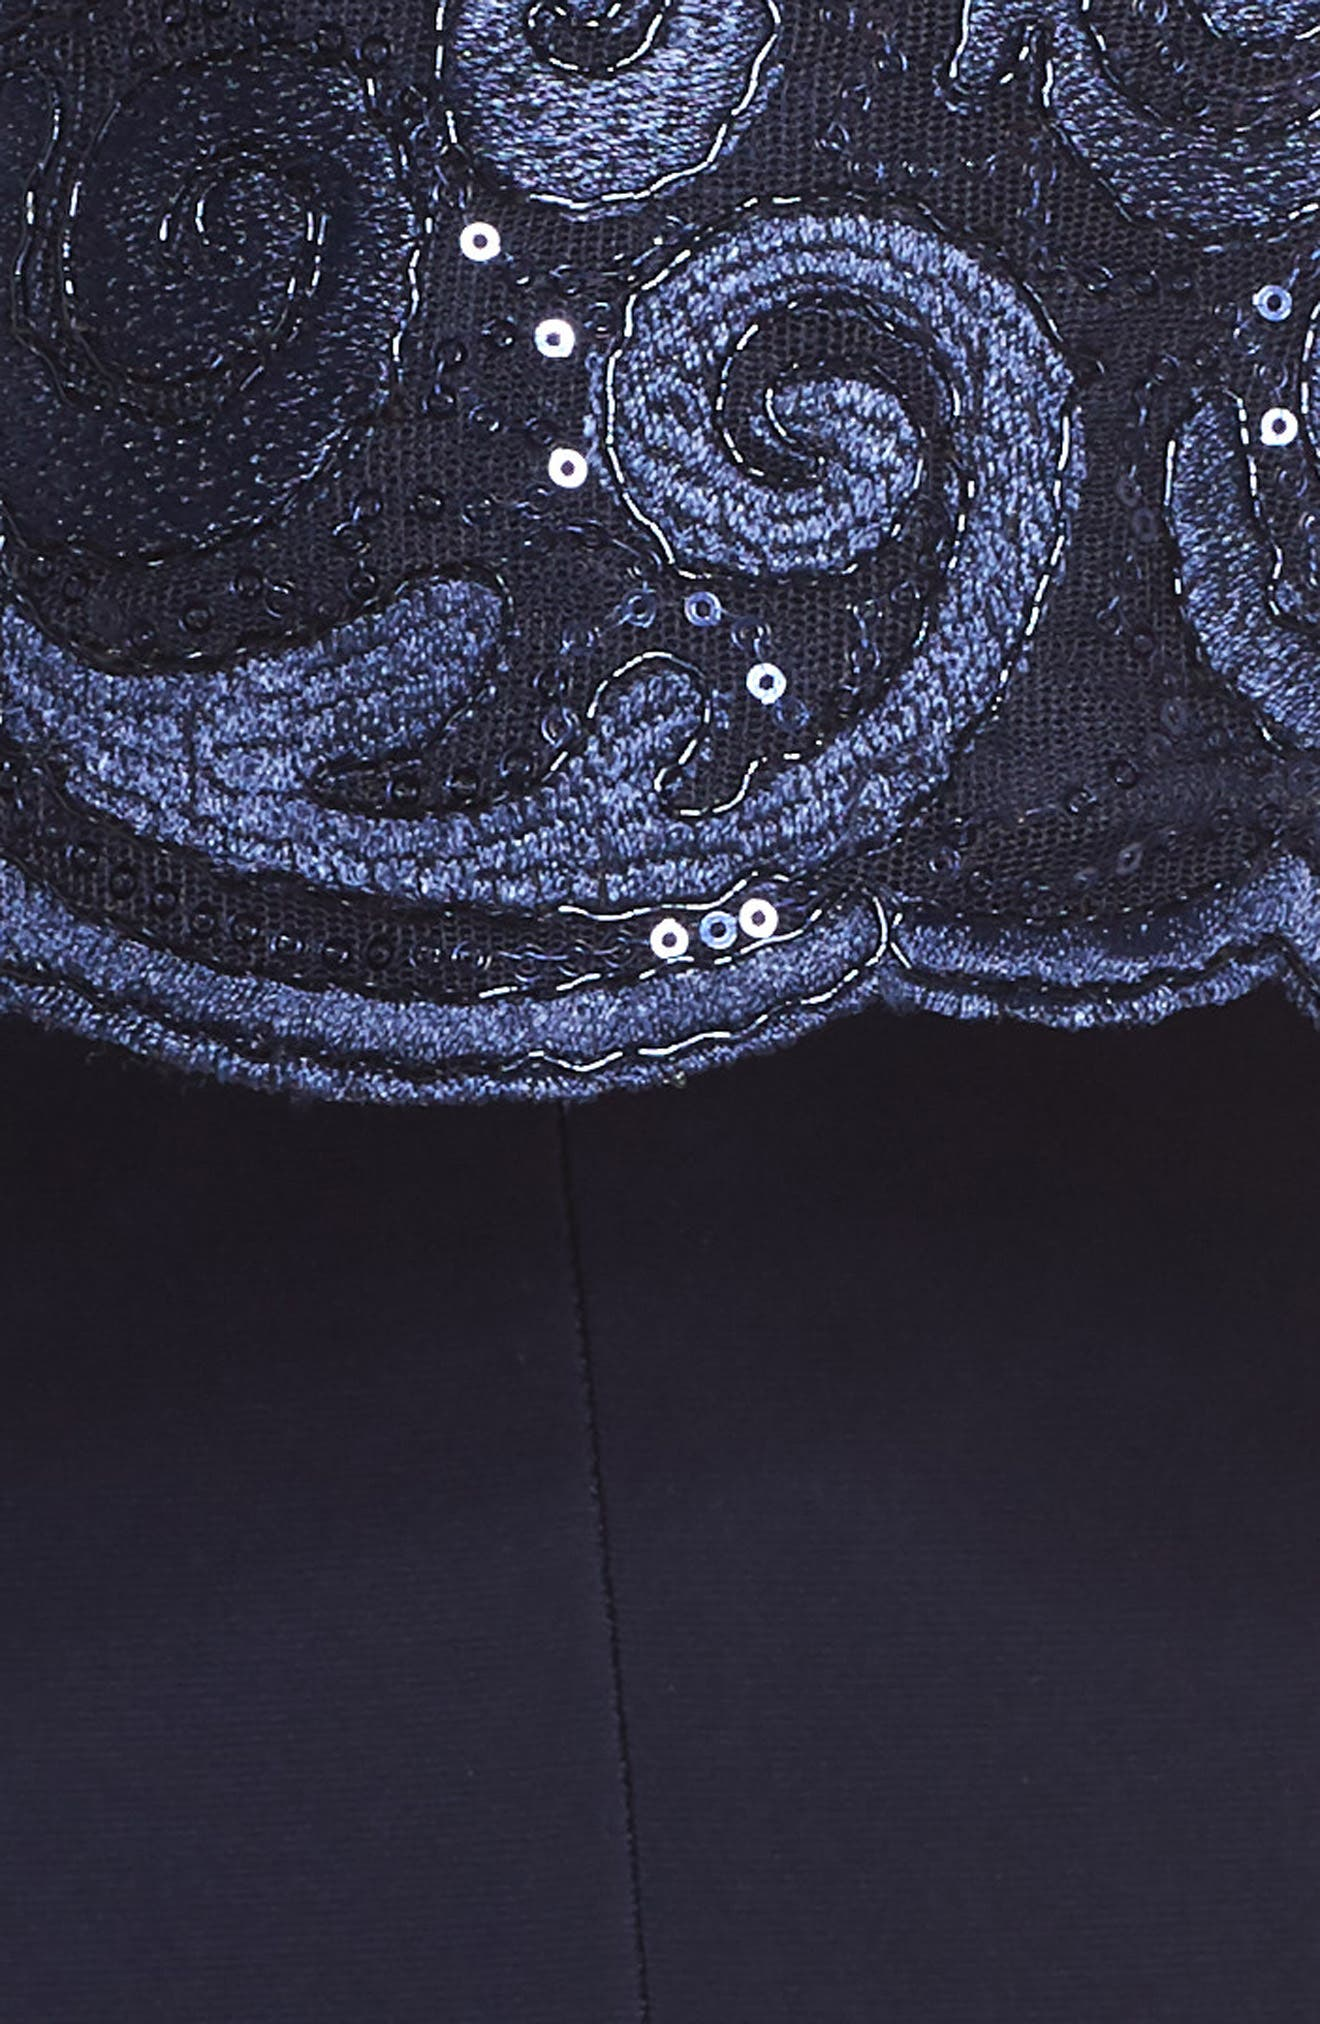 Sequin Embellished Gown with Bolero Jacket,                             Alternate thumbnail 5, color,                             Navy